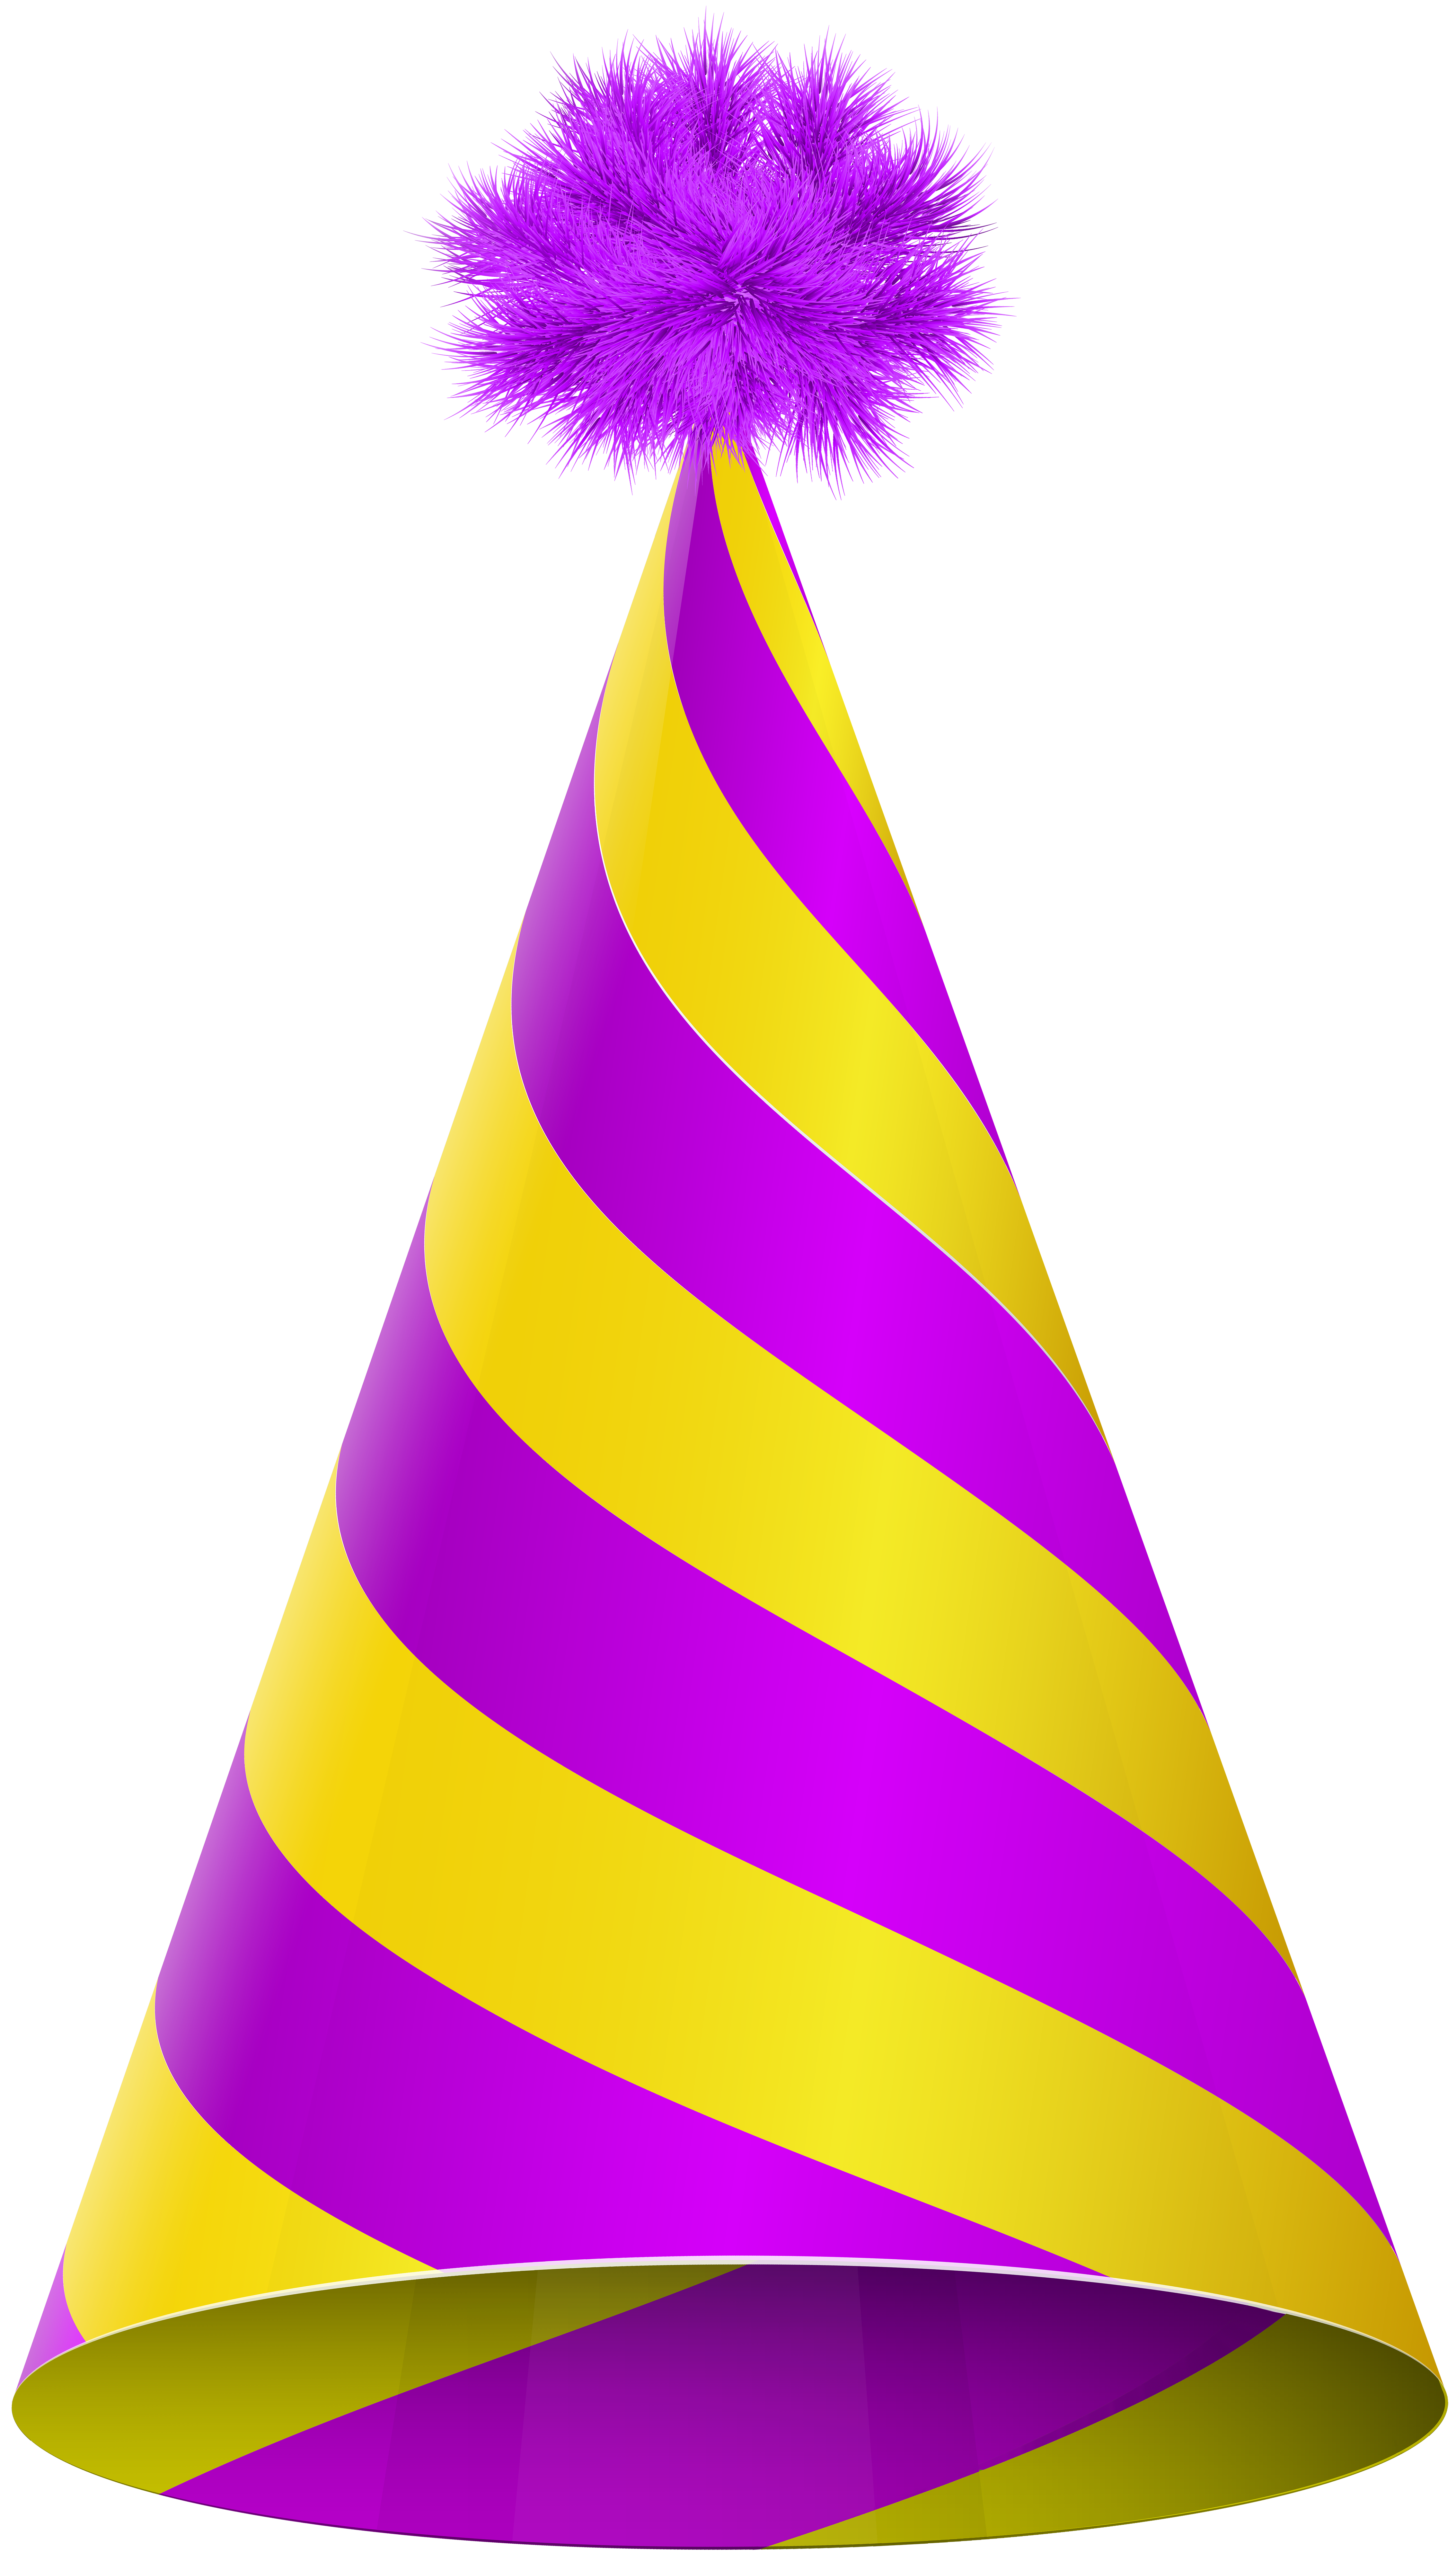 Birthday hat clipart purple pictures on Cliparts Pub 2020! 🔝